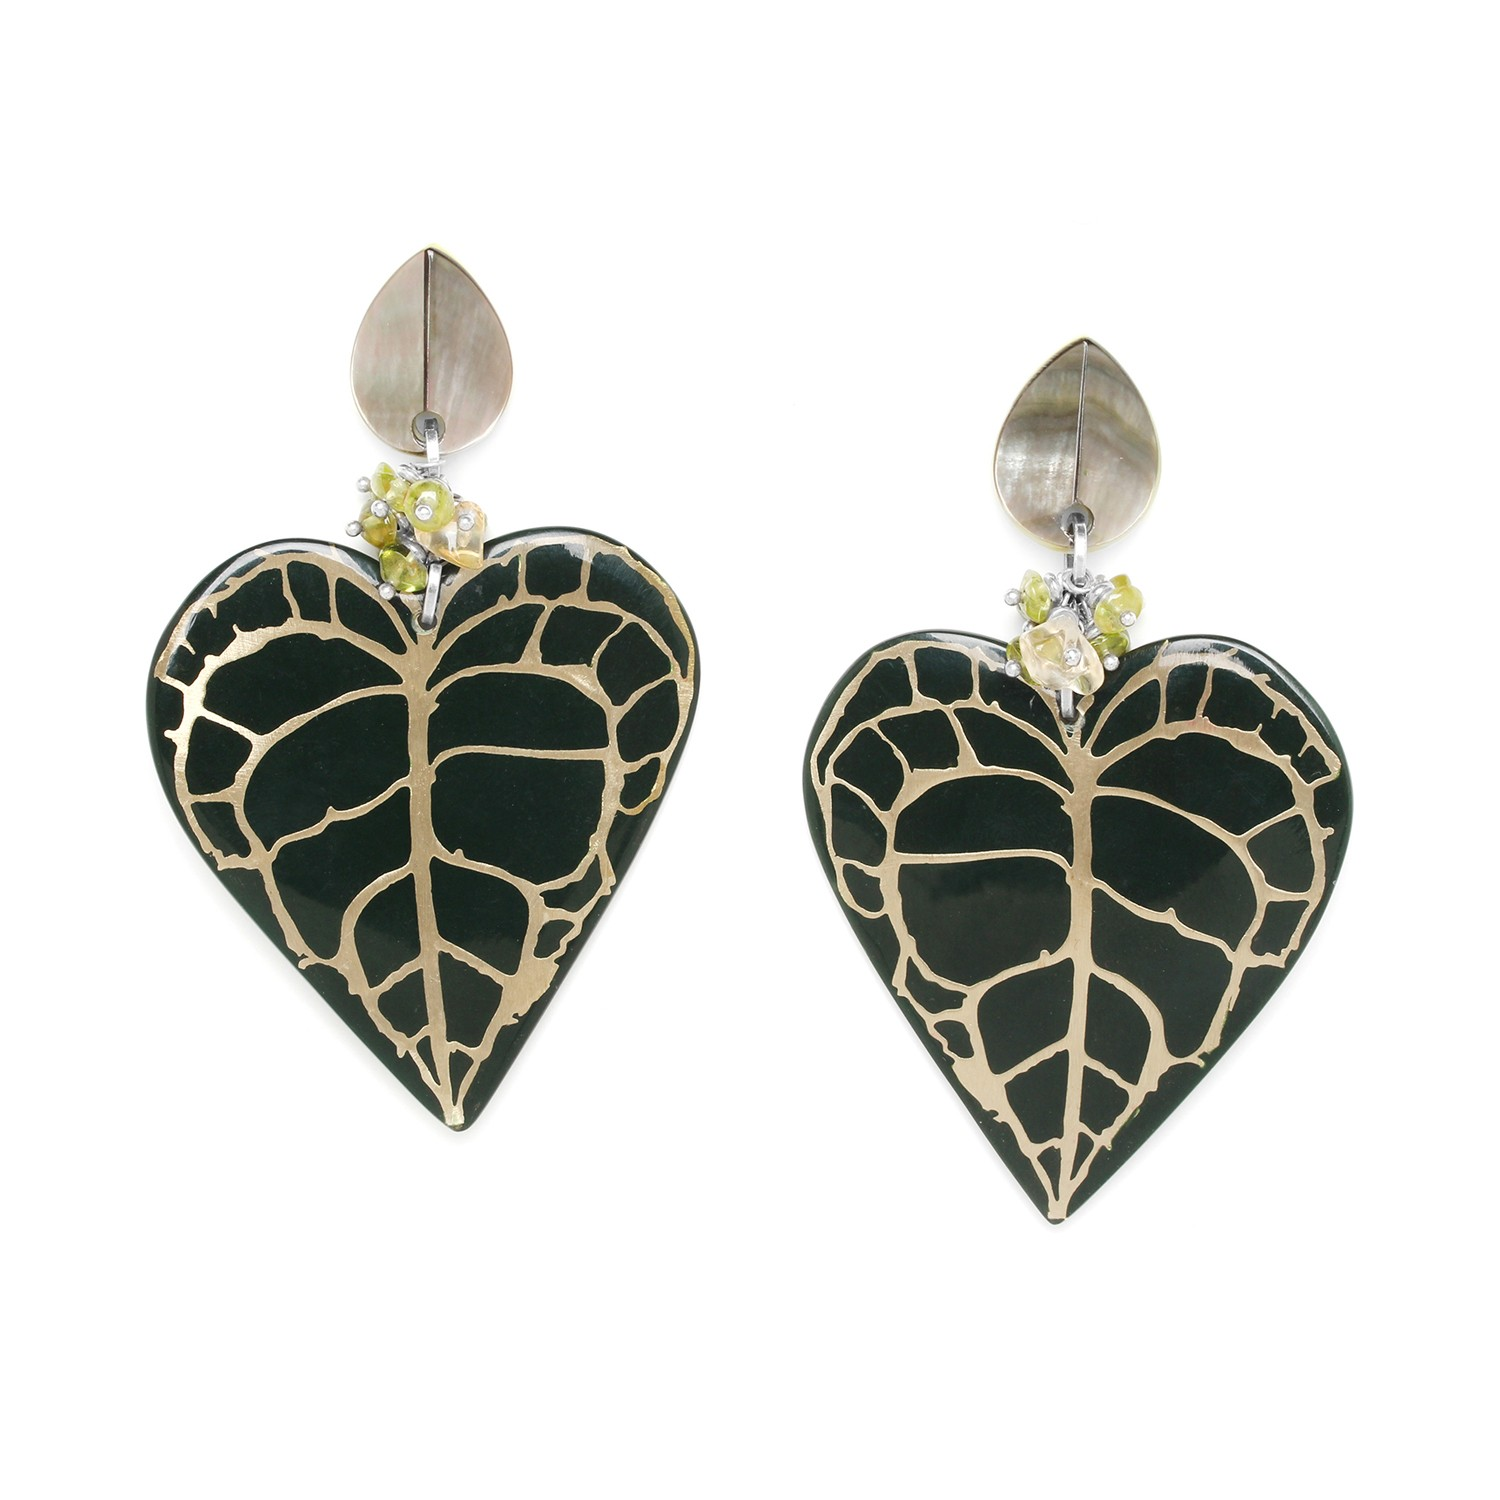 HERBORISTE heart shape leaves earrings